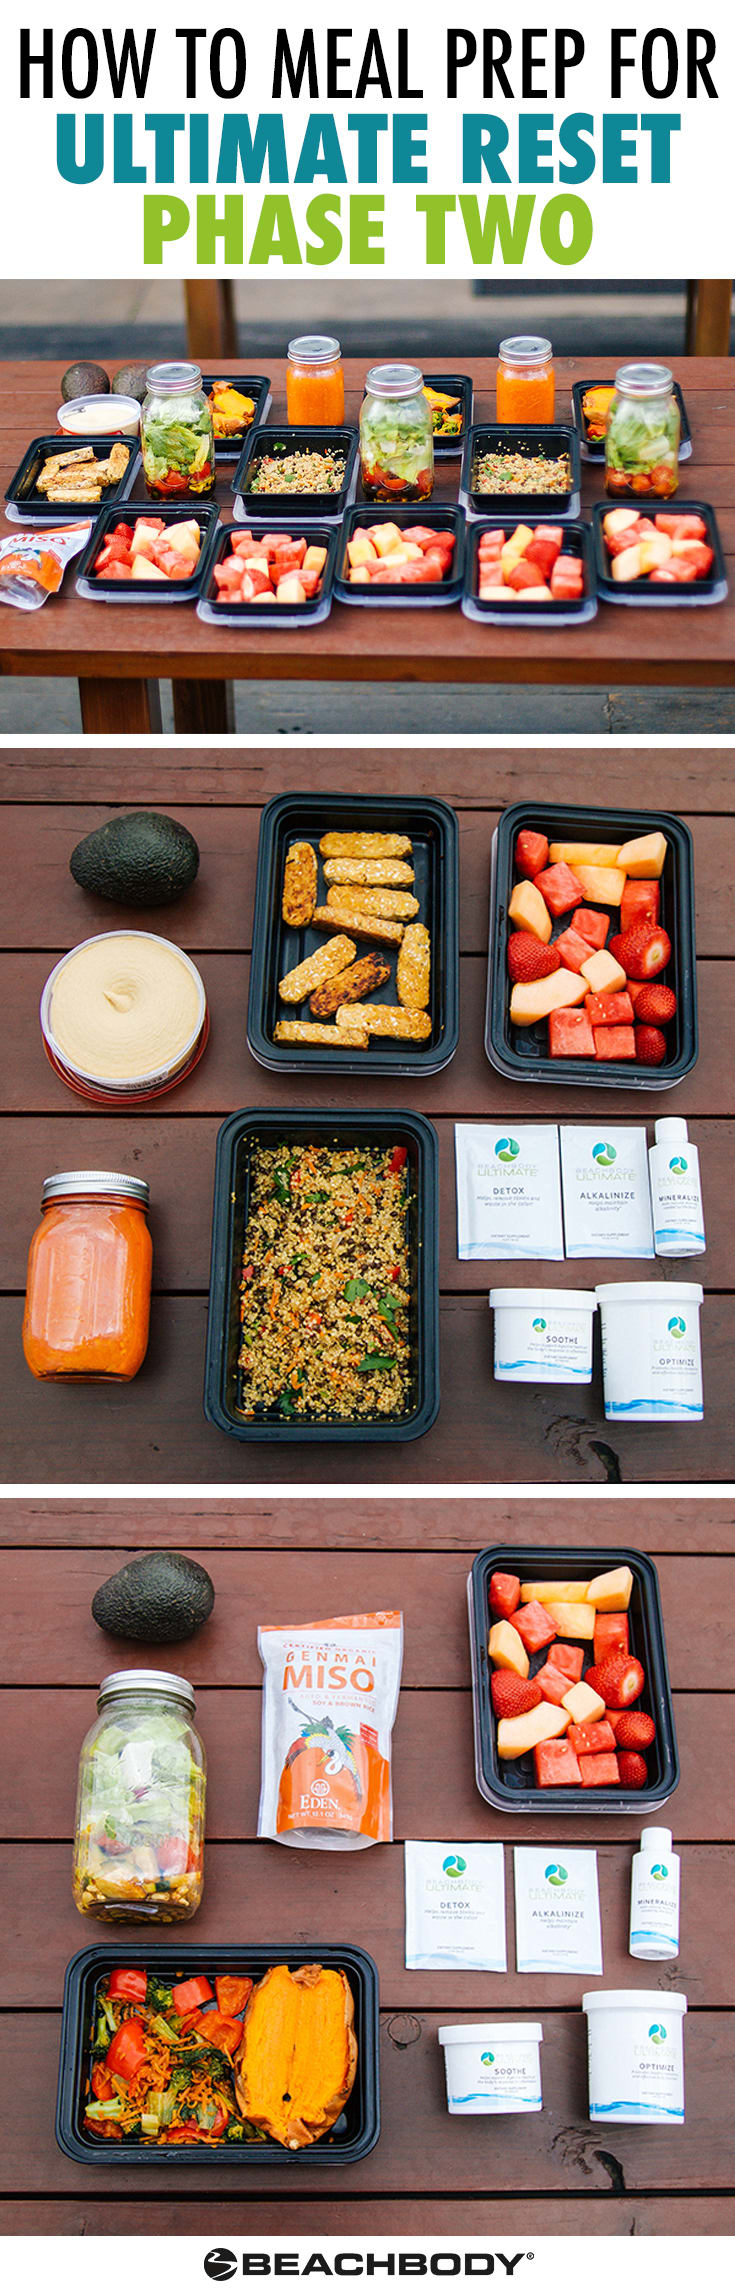 How to Meal Prep for Ultimate Reset (Phase Two)